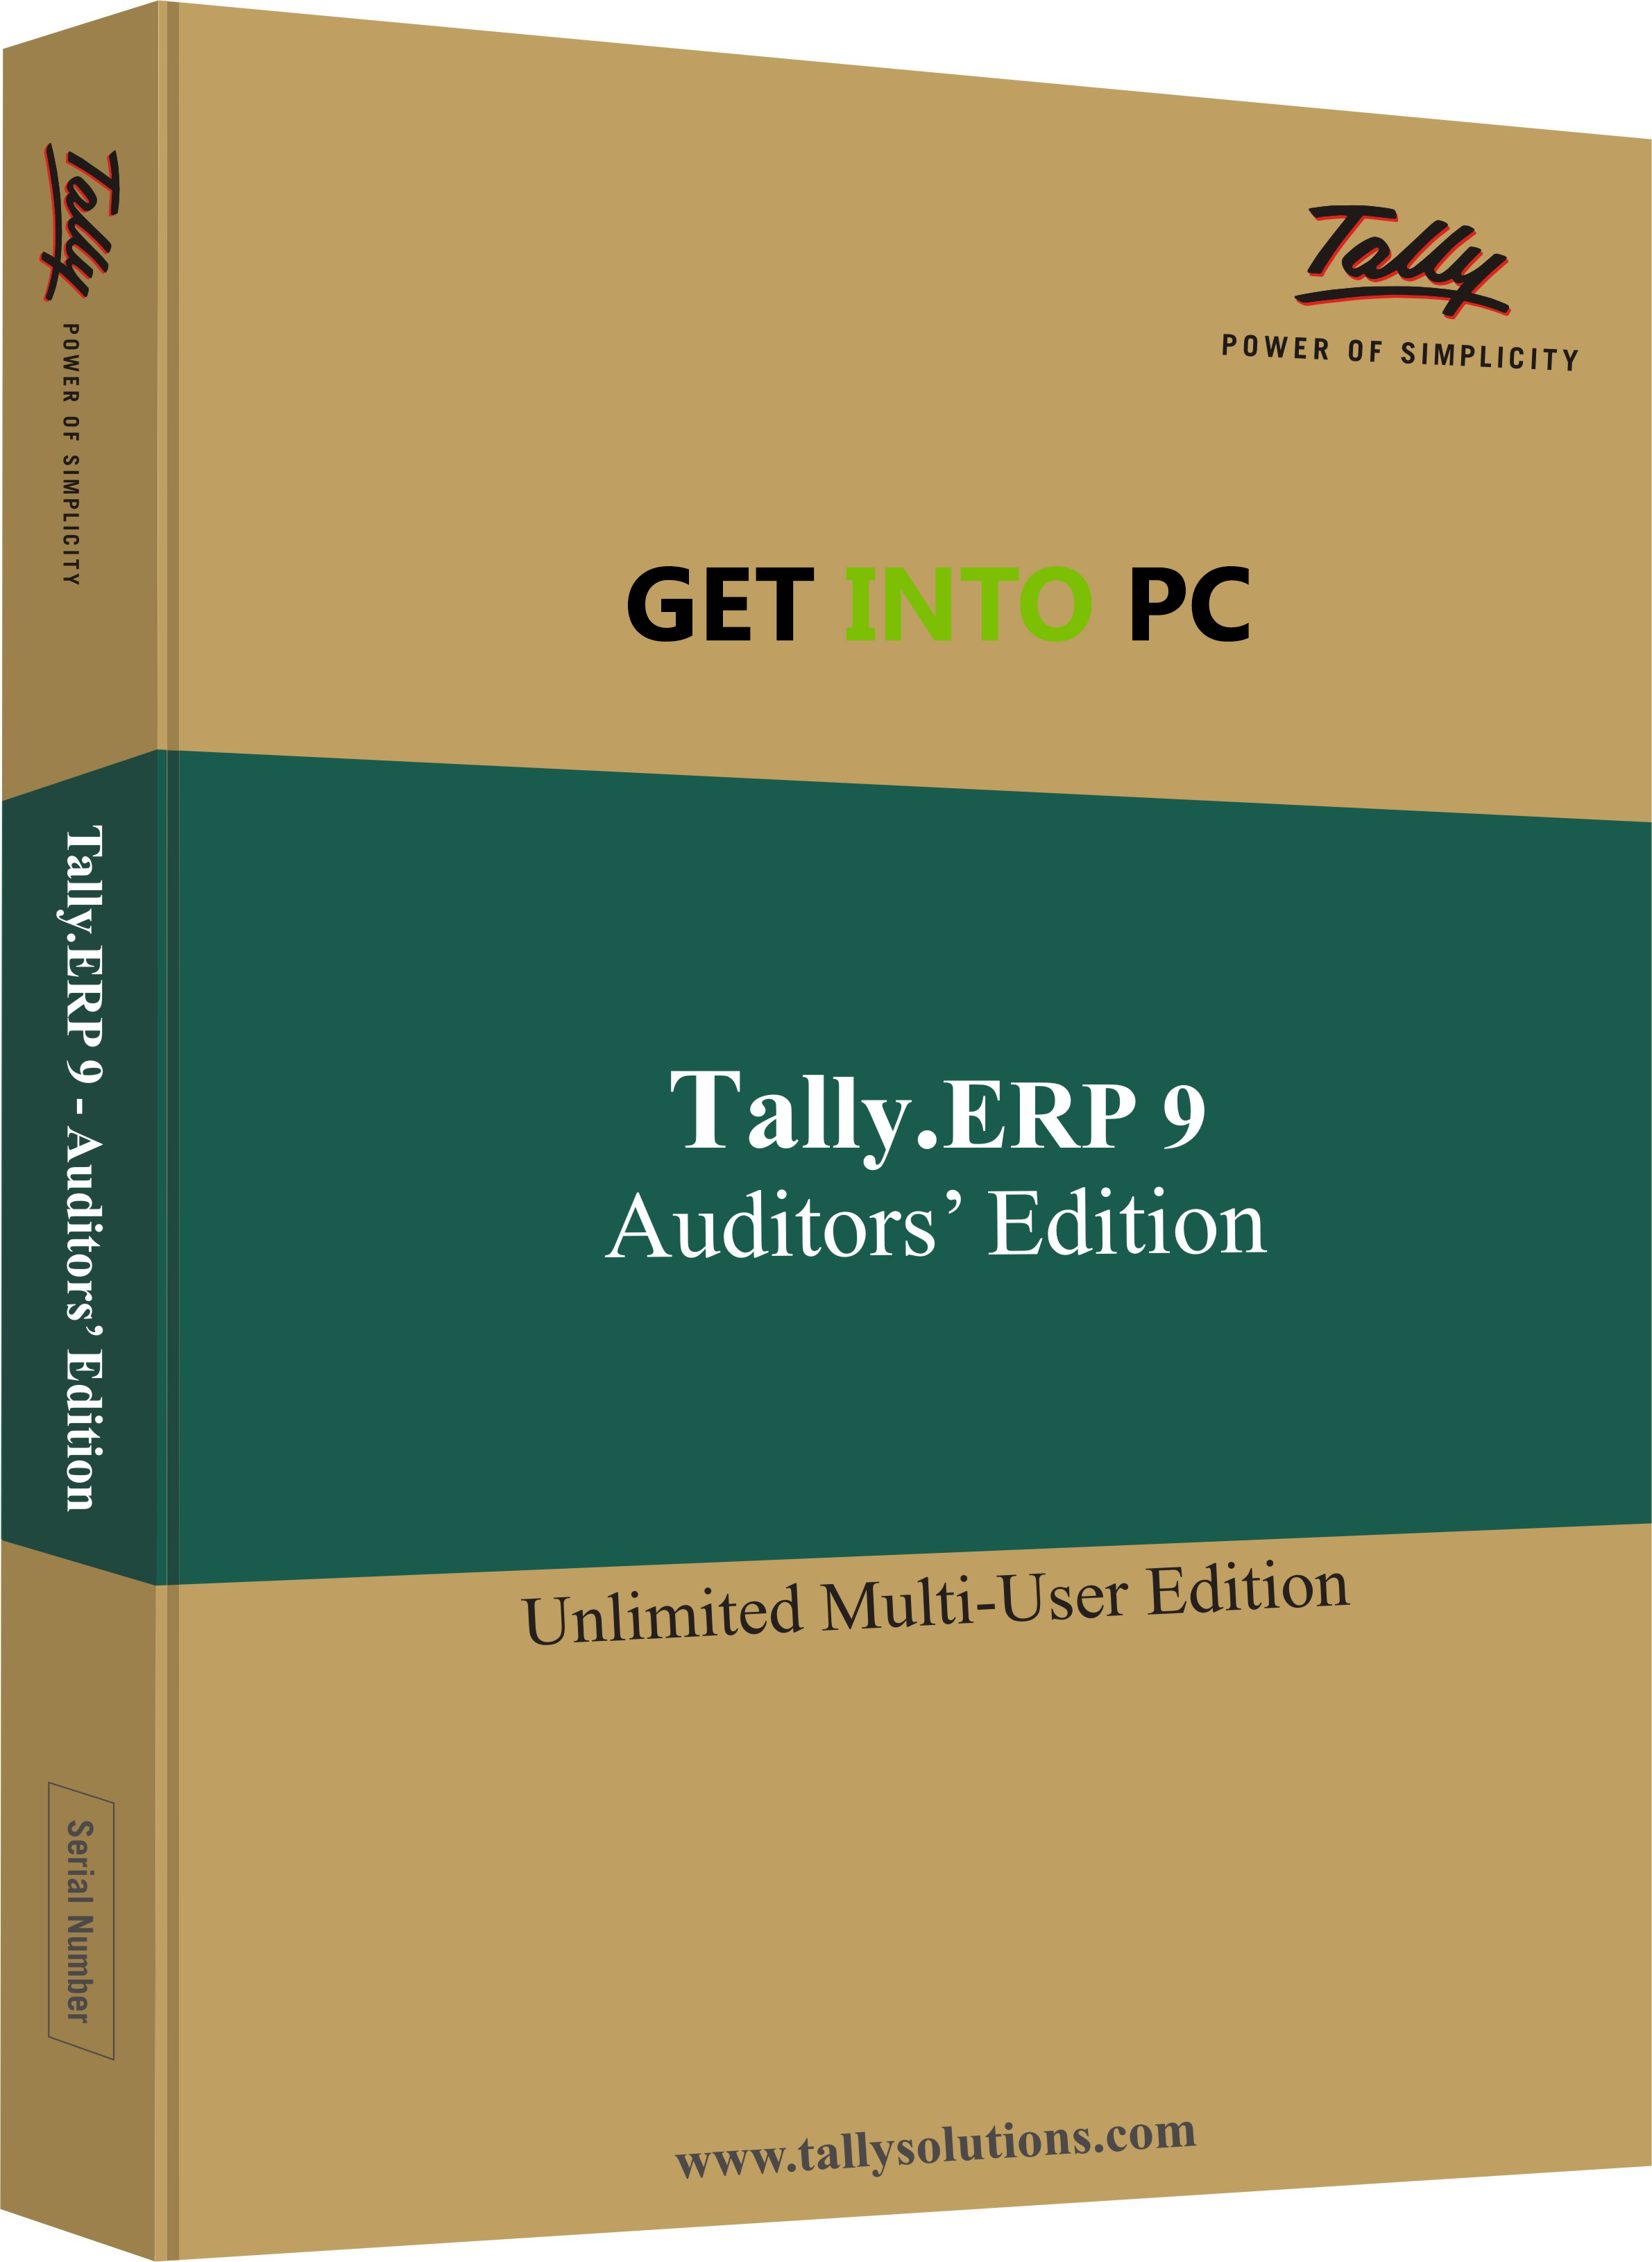 download and install tally erp 9 crack release 6.1 zip file